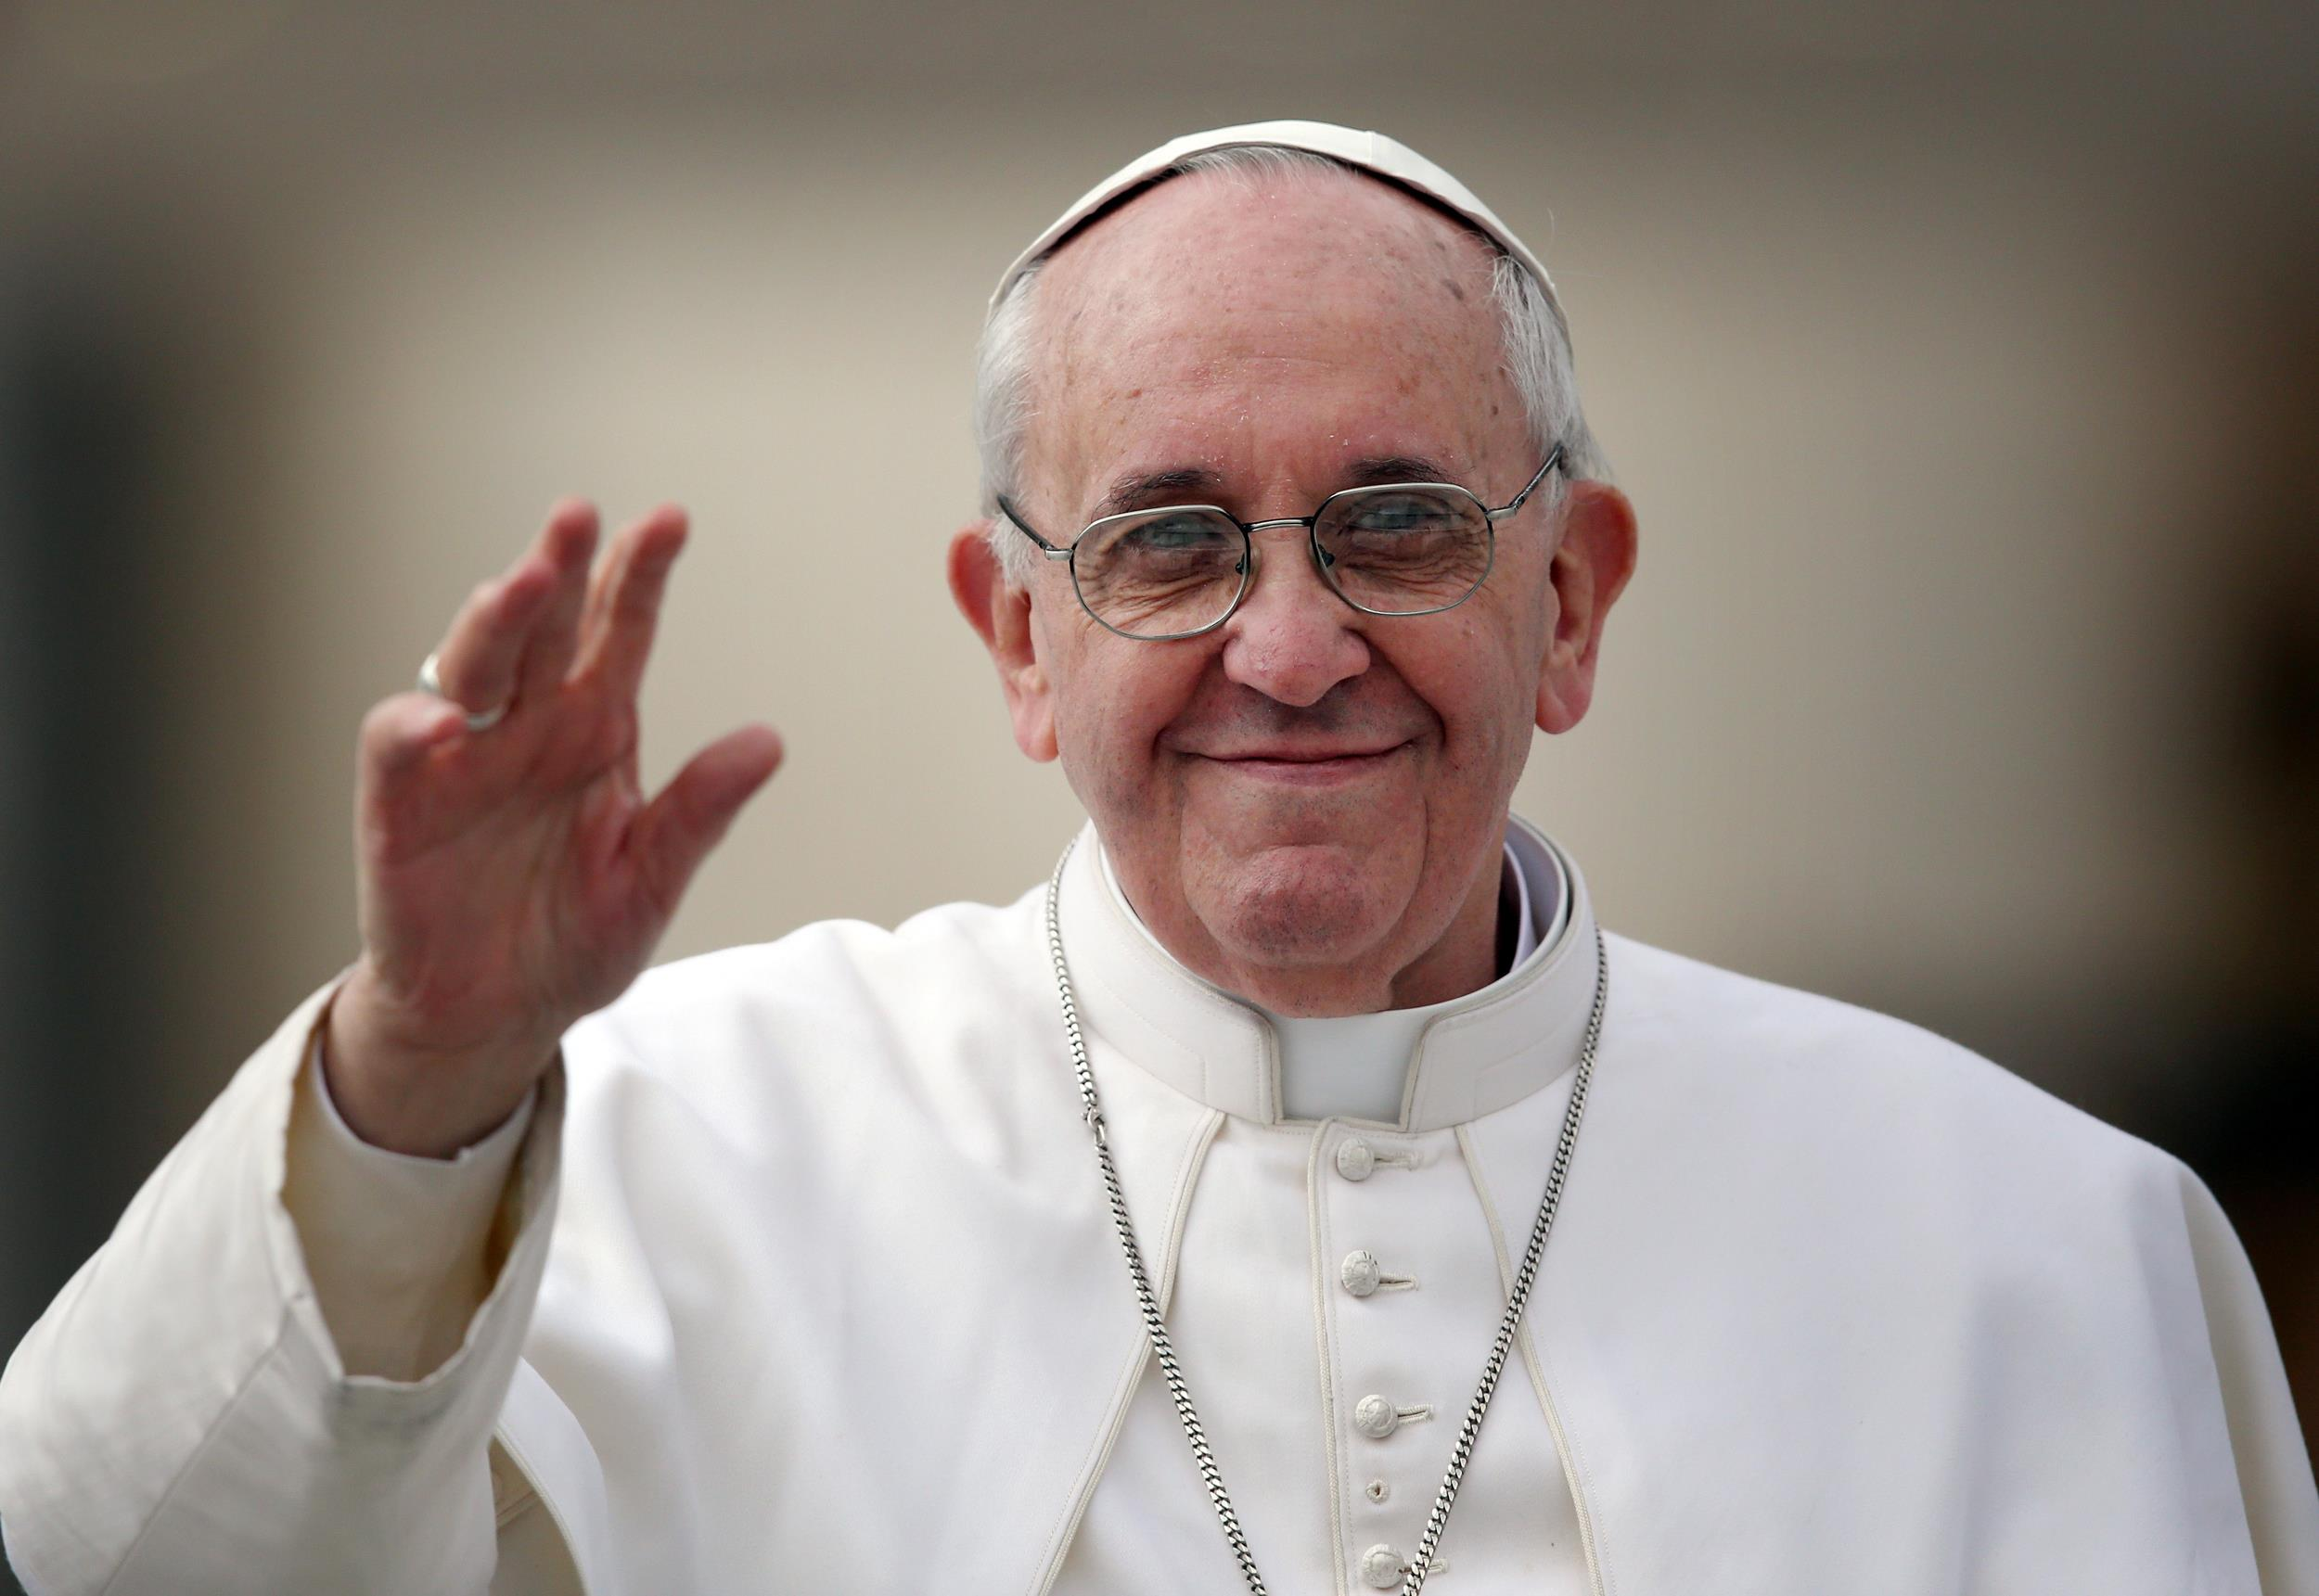 Vida do Papa Francisco chega ao cinema